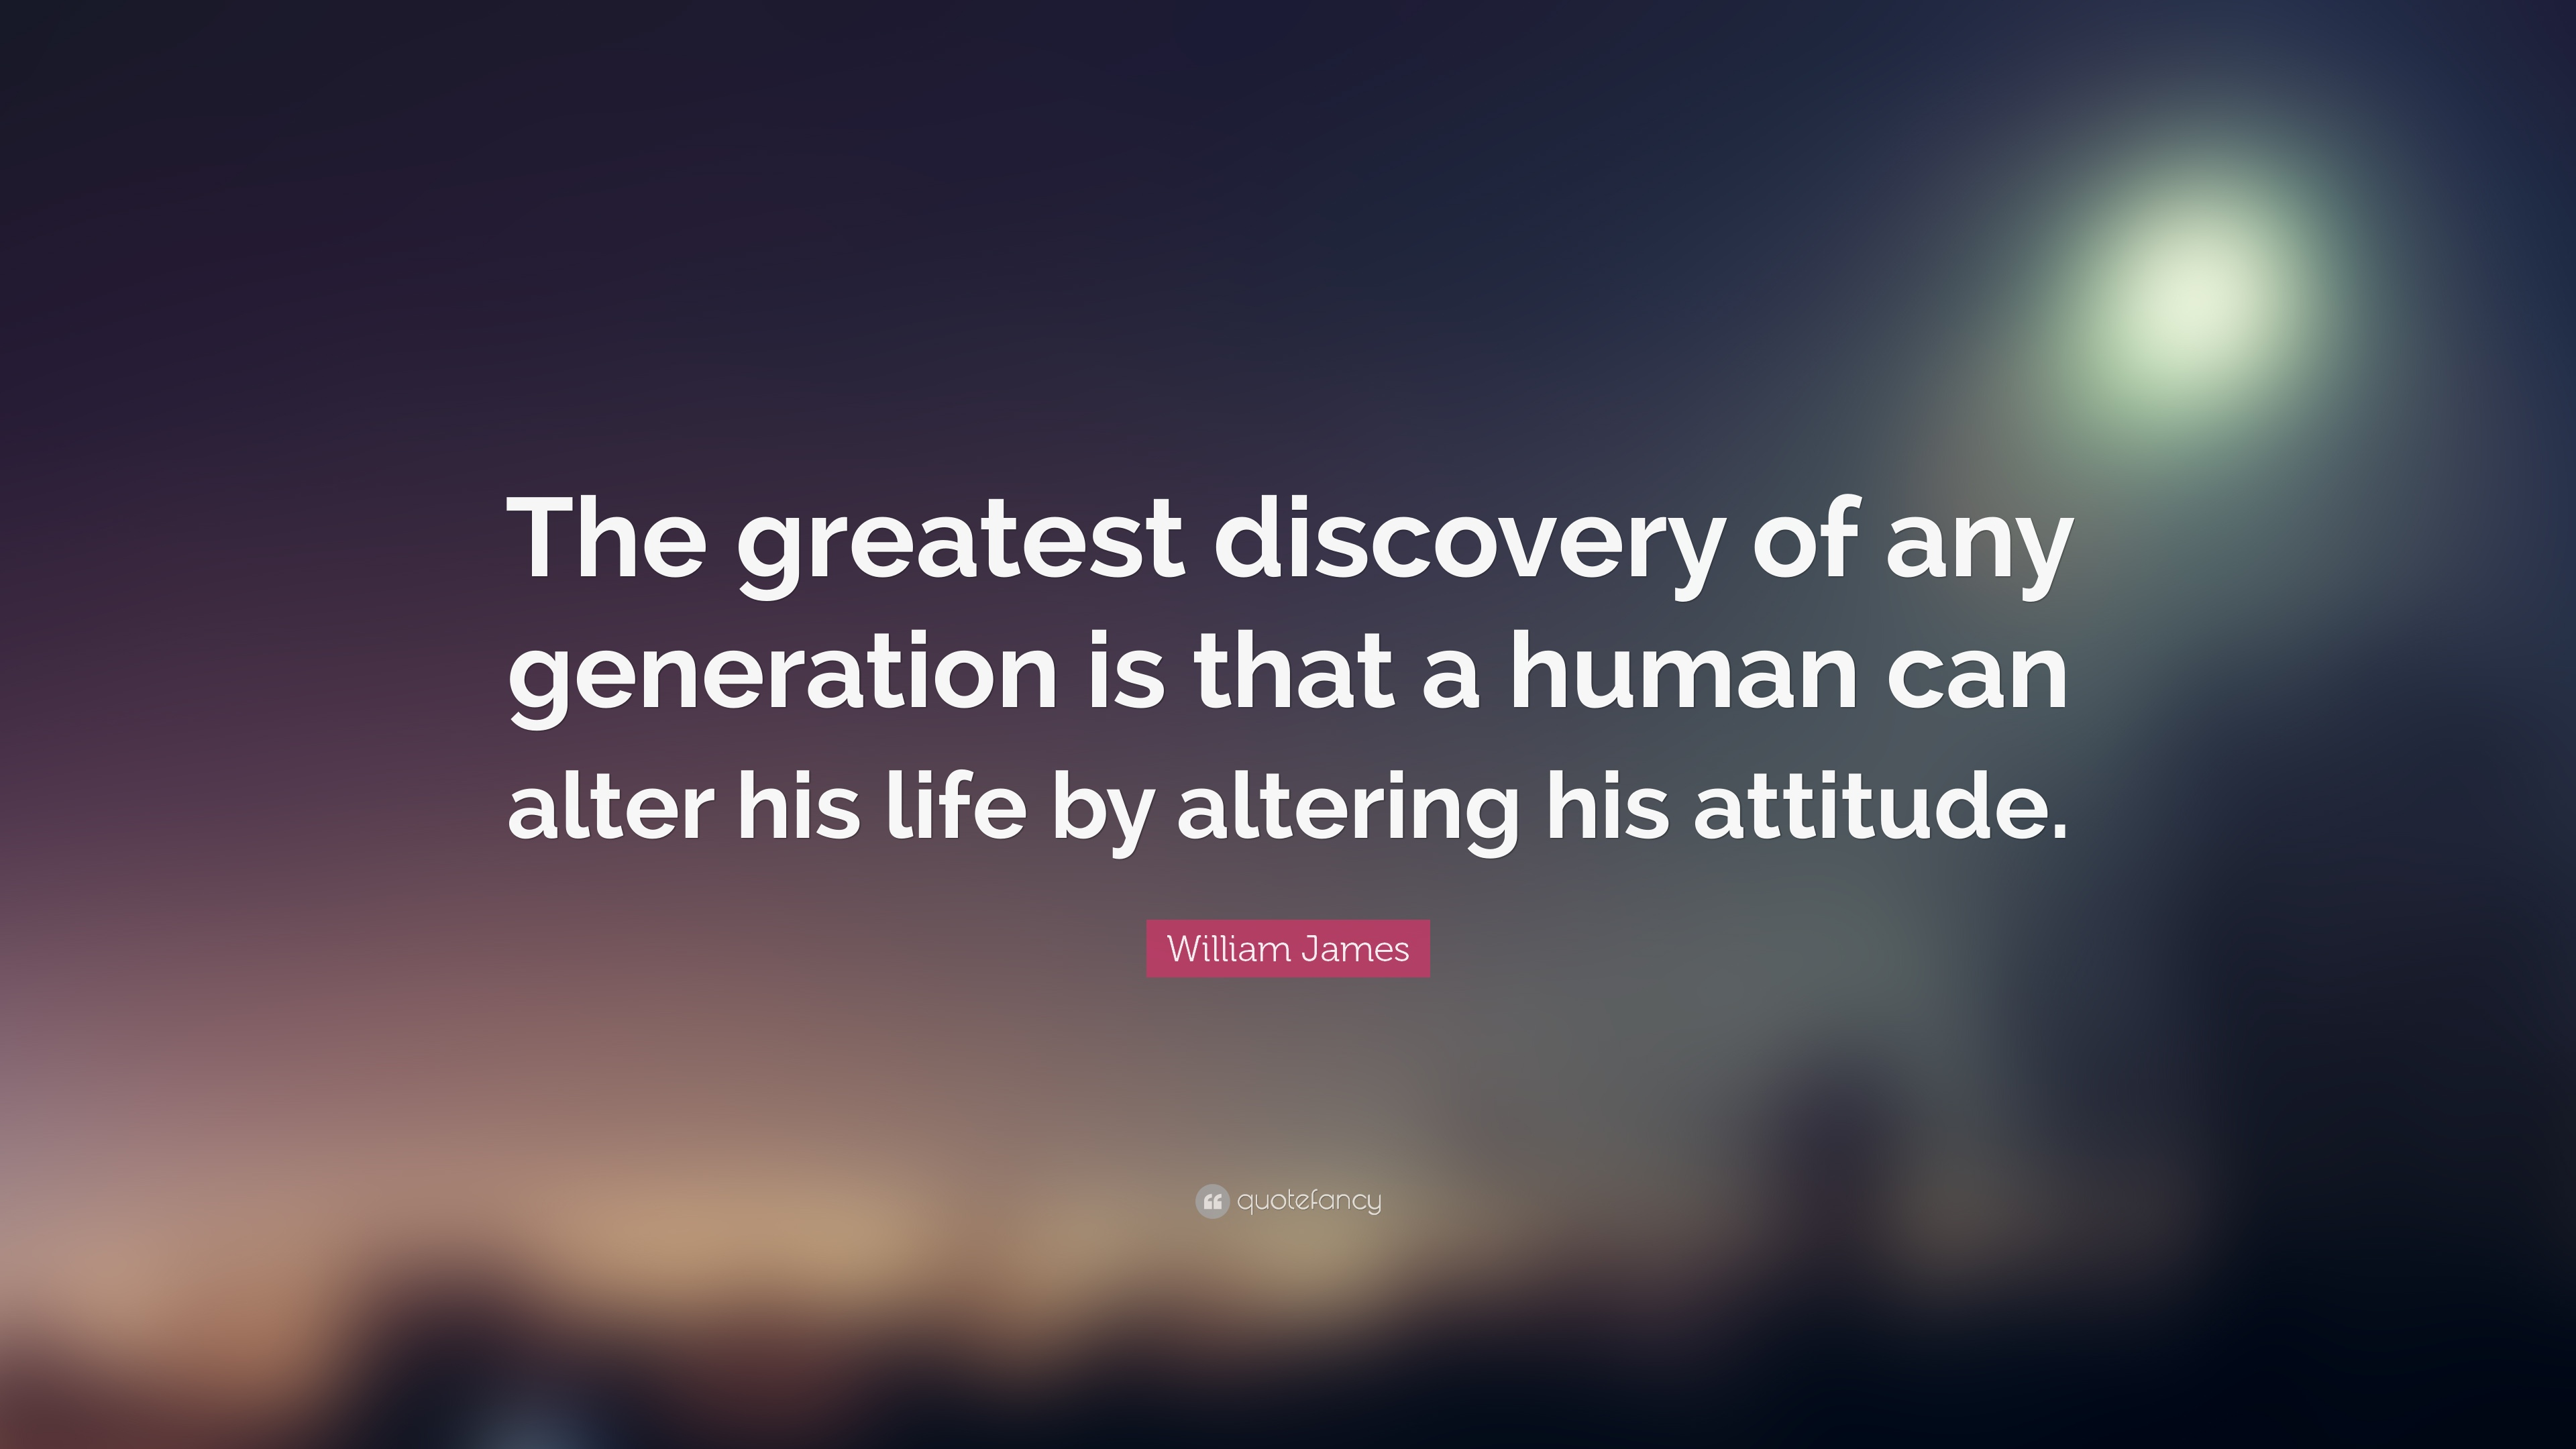 43 Famous Discovery Quotes Sayings About Discovery: William James Quotes (23 Wallpapers)